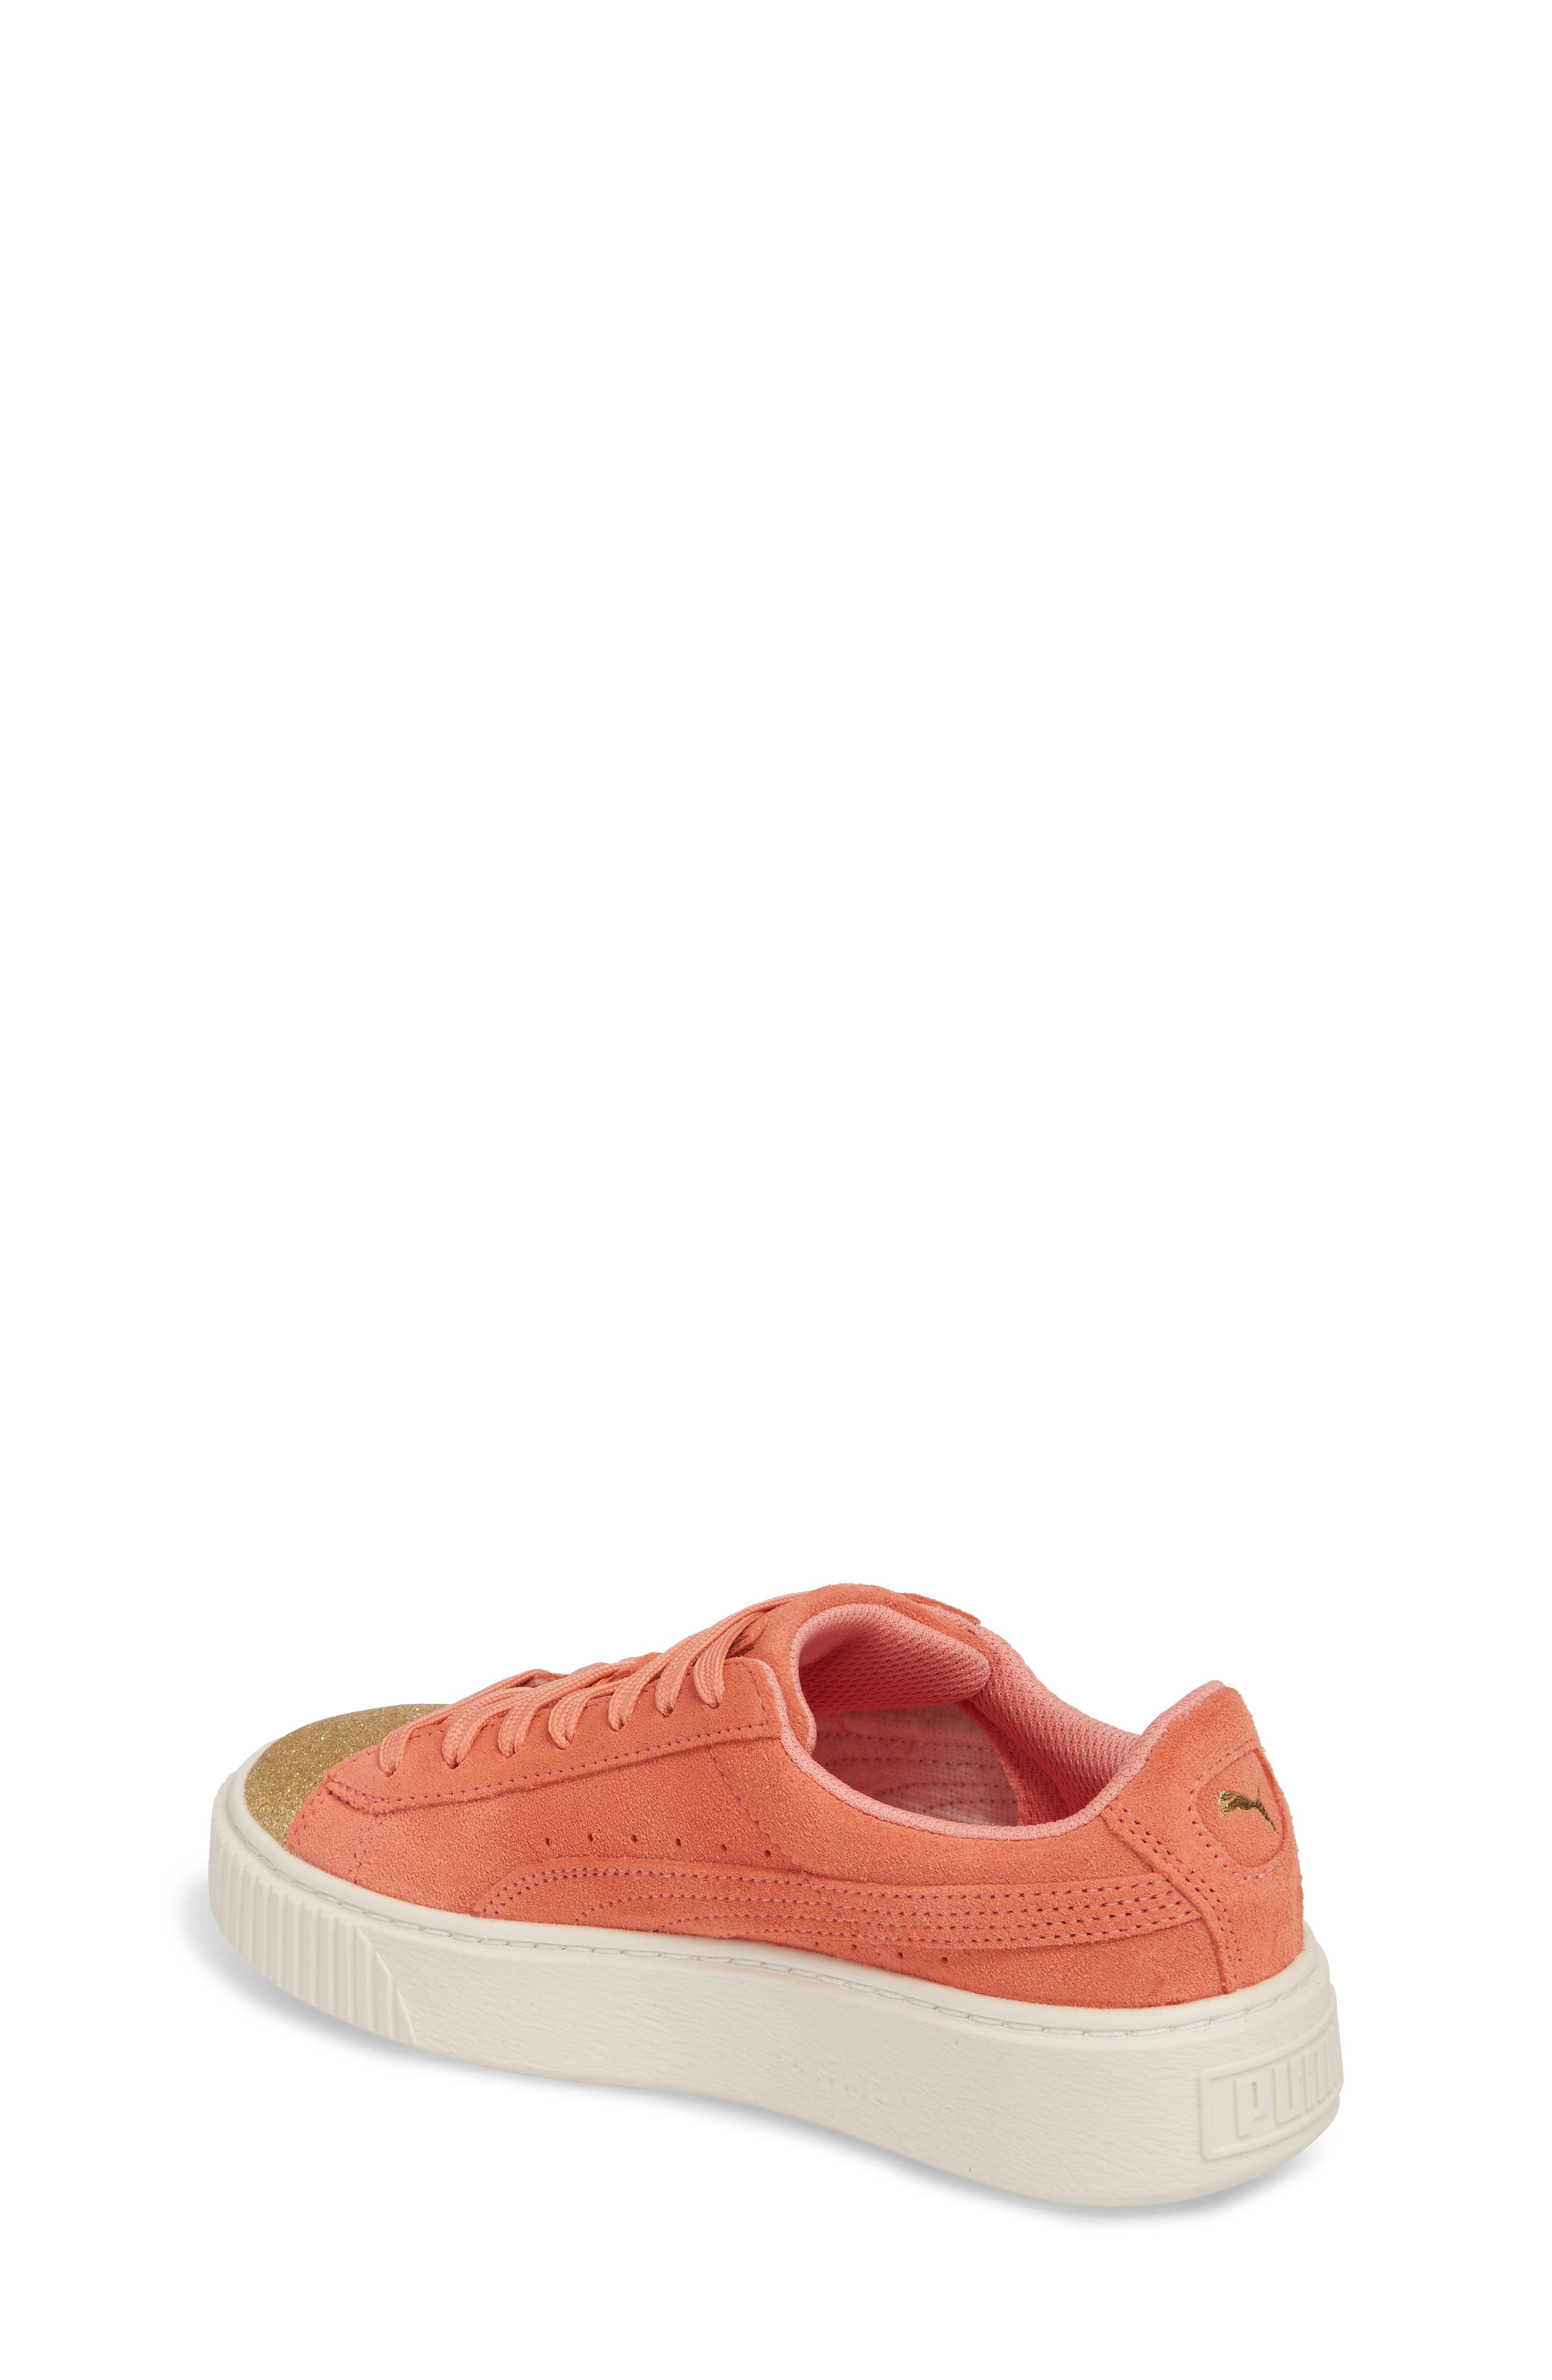 Suede Platform Glam PS Sneaker,                             Alternate thumbnail 2, color,                             Puma Team Gold/ Shell Pink